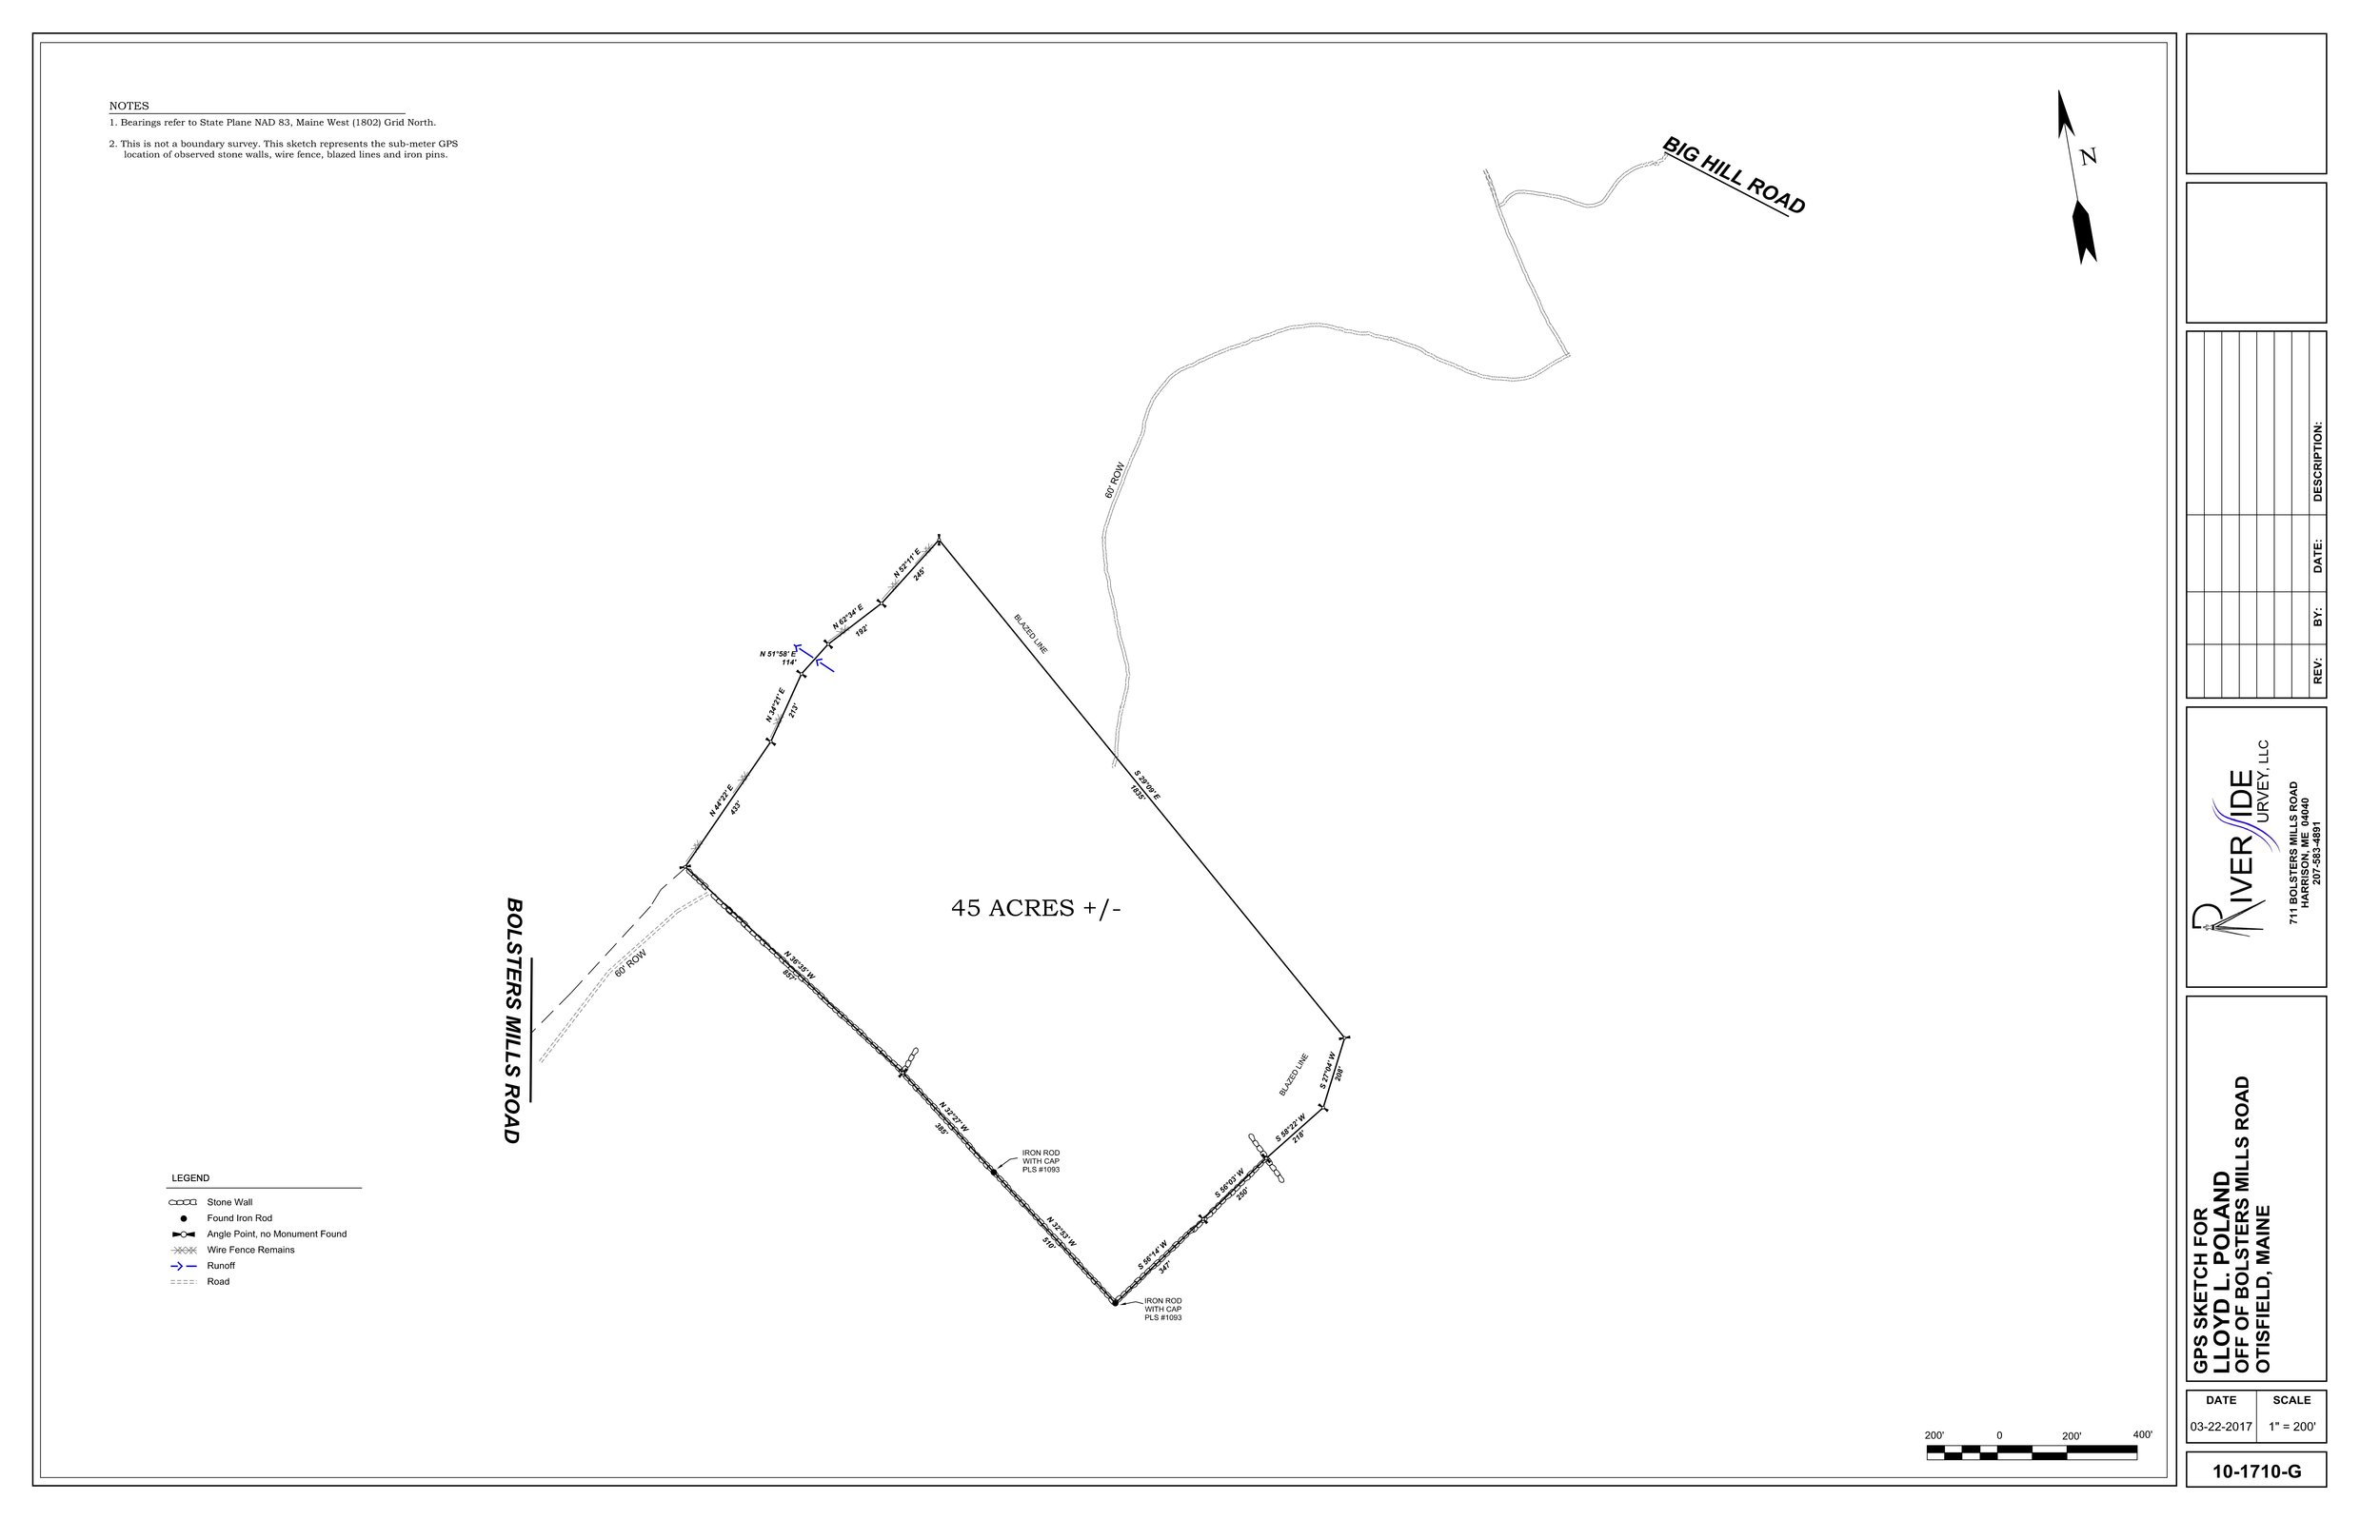 OTISFIELD - Click Here To View The PDF MapClick Here To Download The Google Earth Link